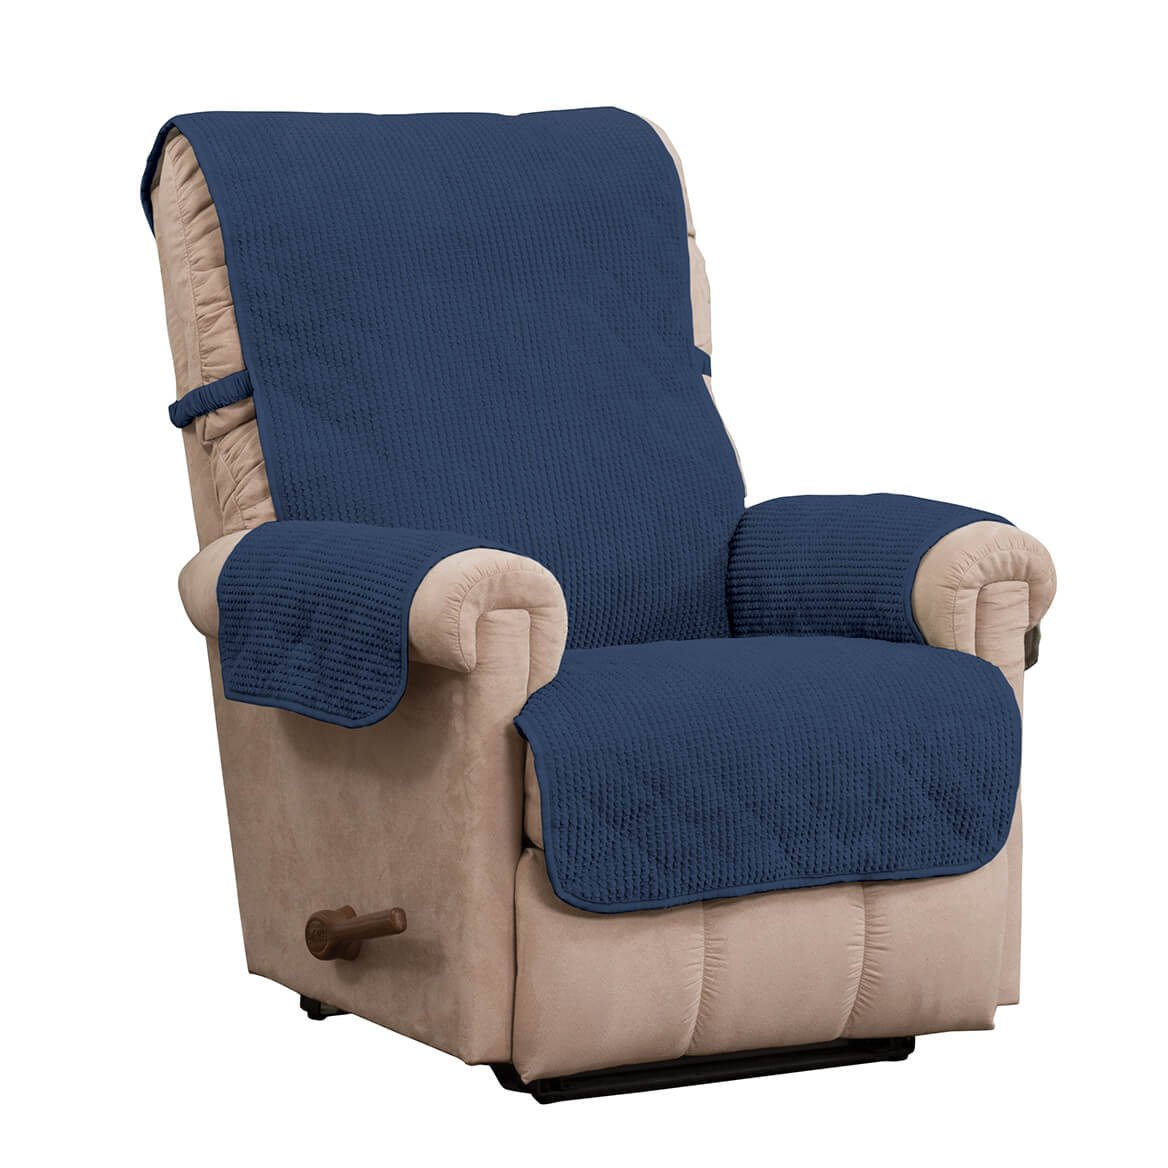 Miles Kimball Ripple Plush Recliner Protector